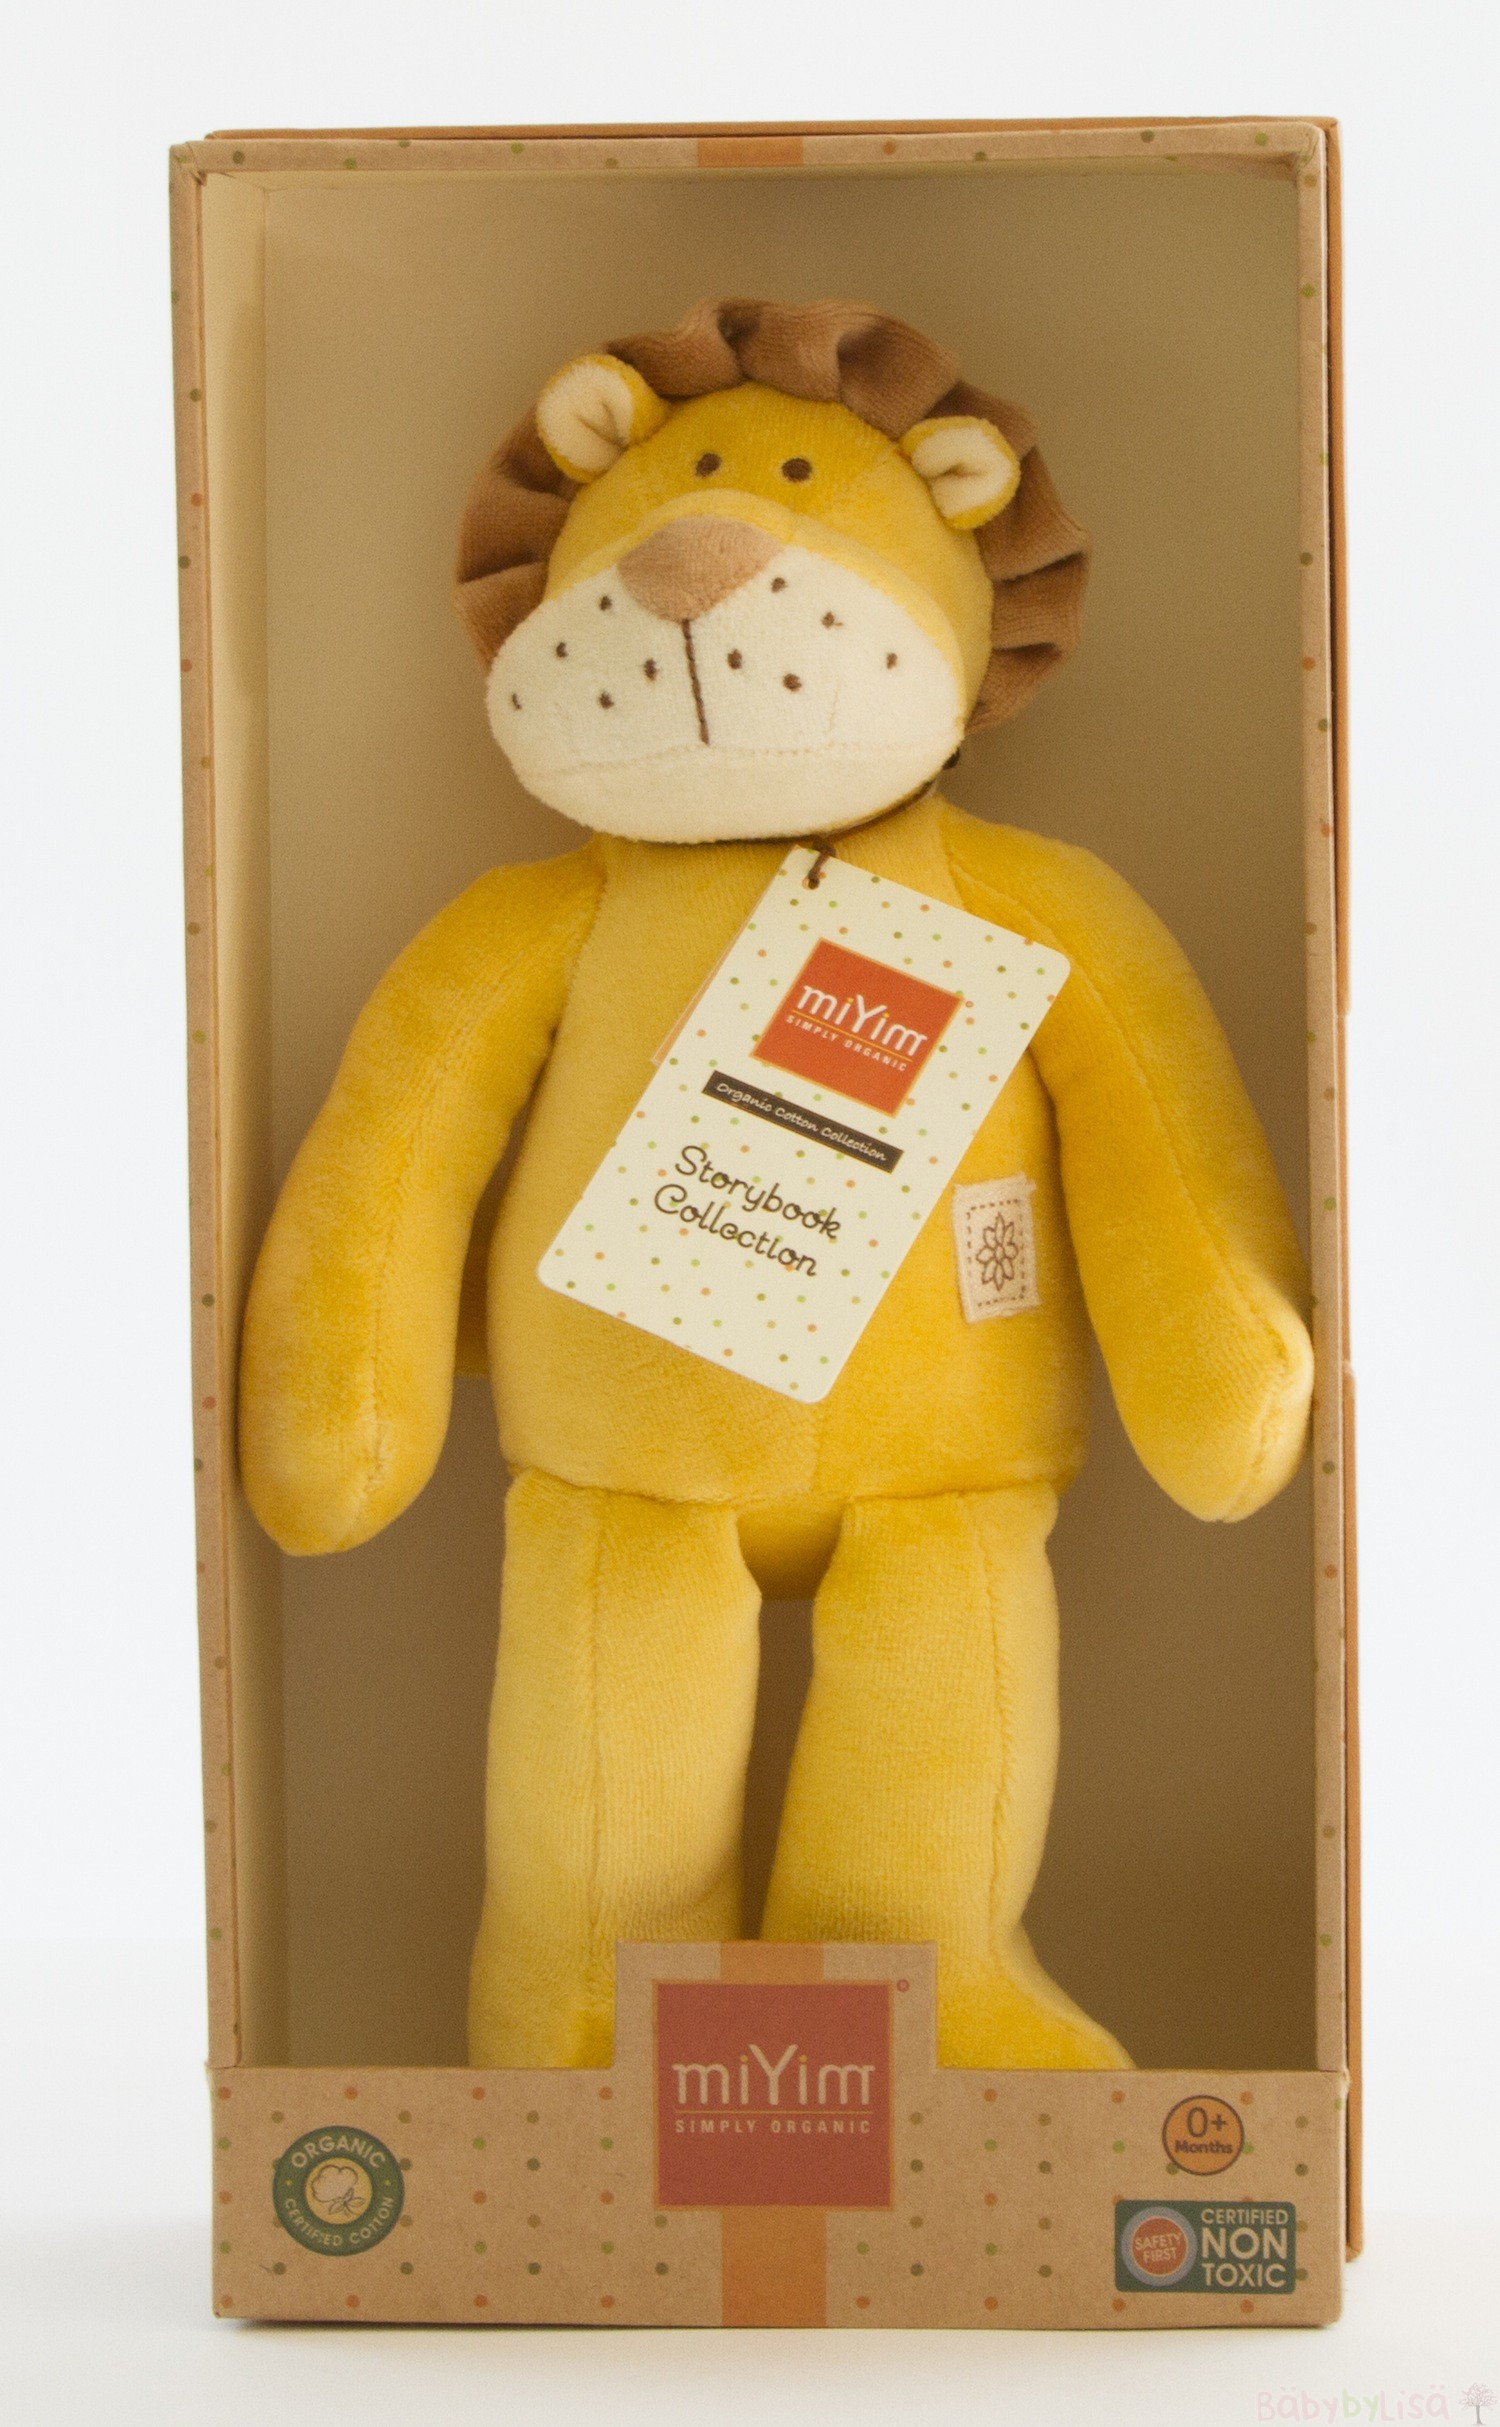 miYim Storybook  Plush - Lion